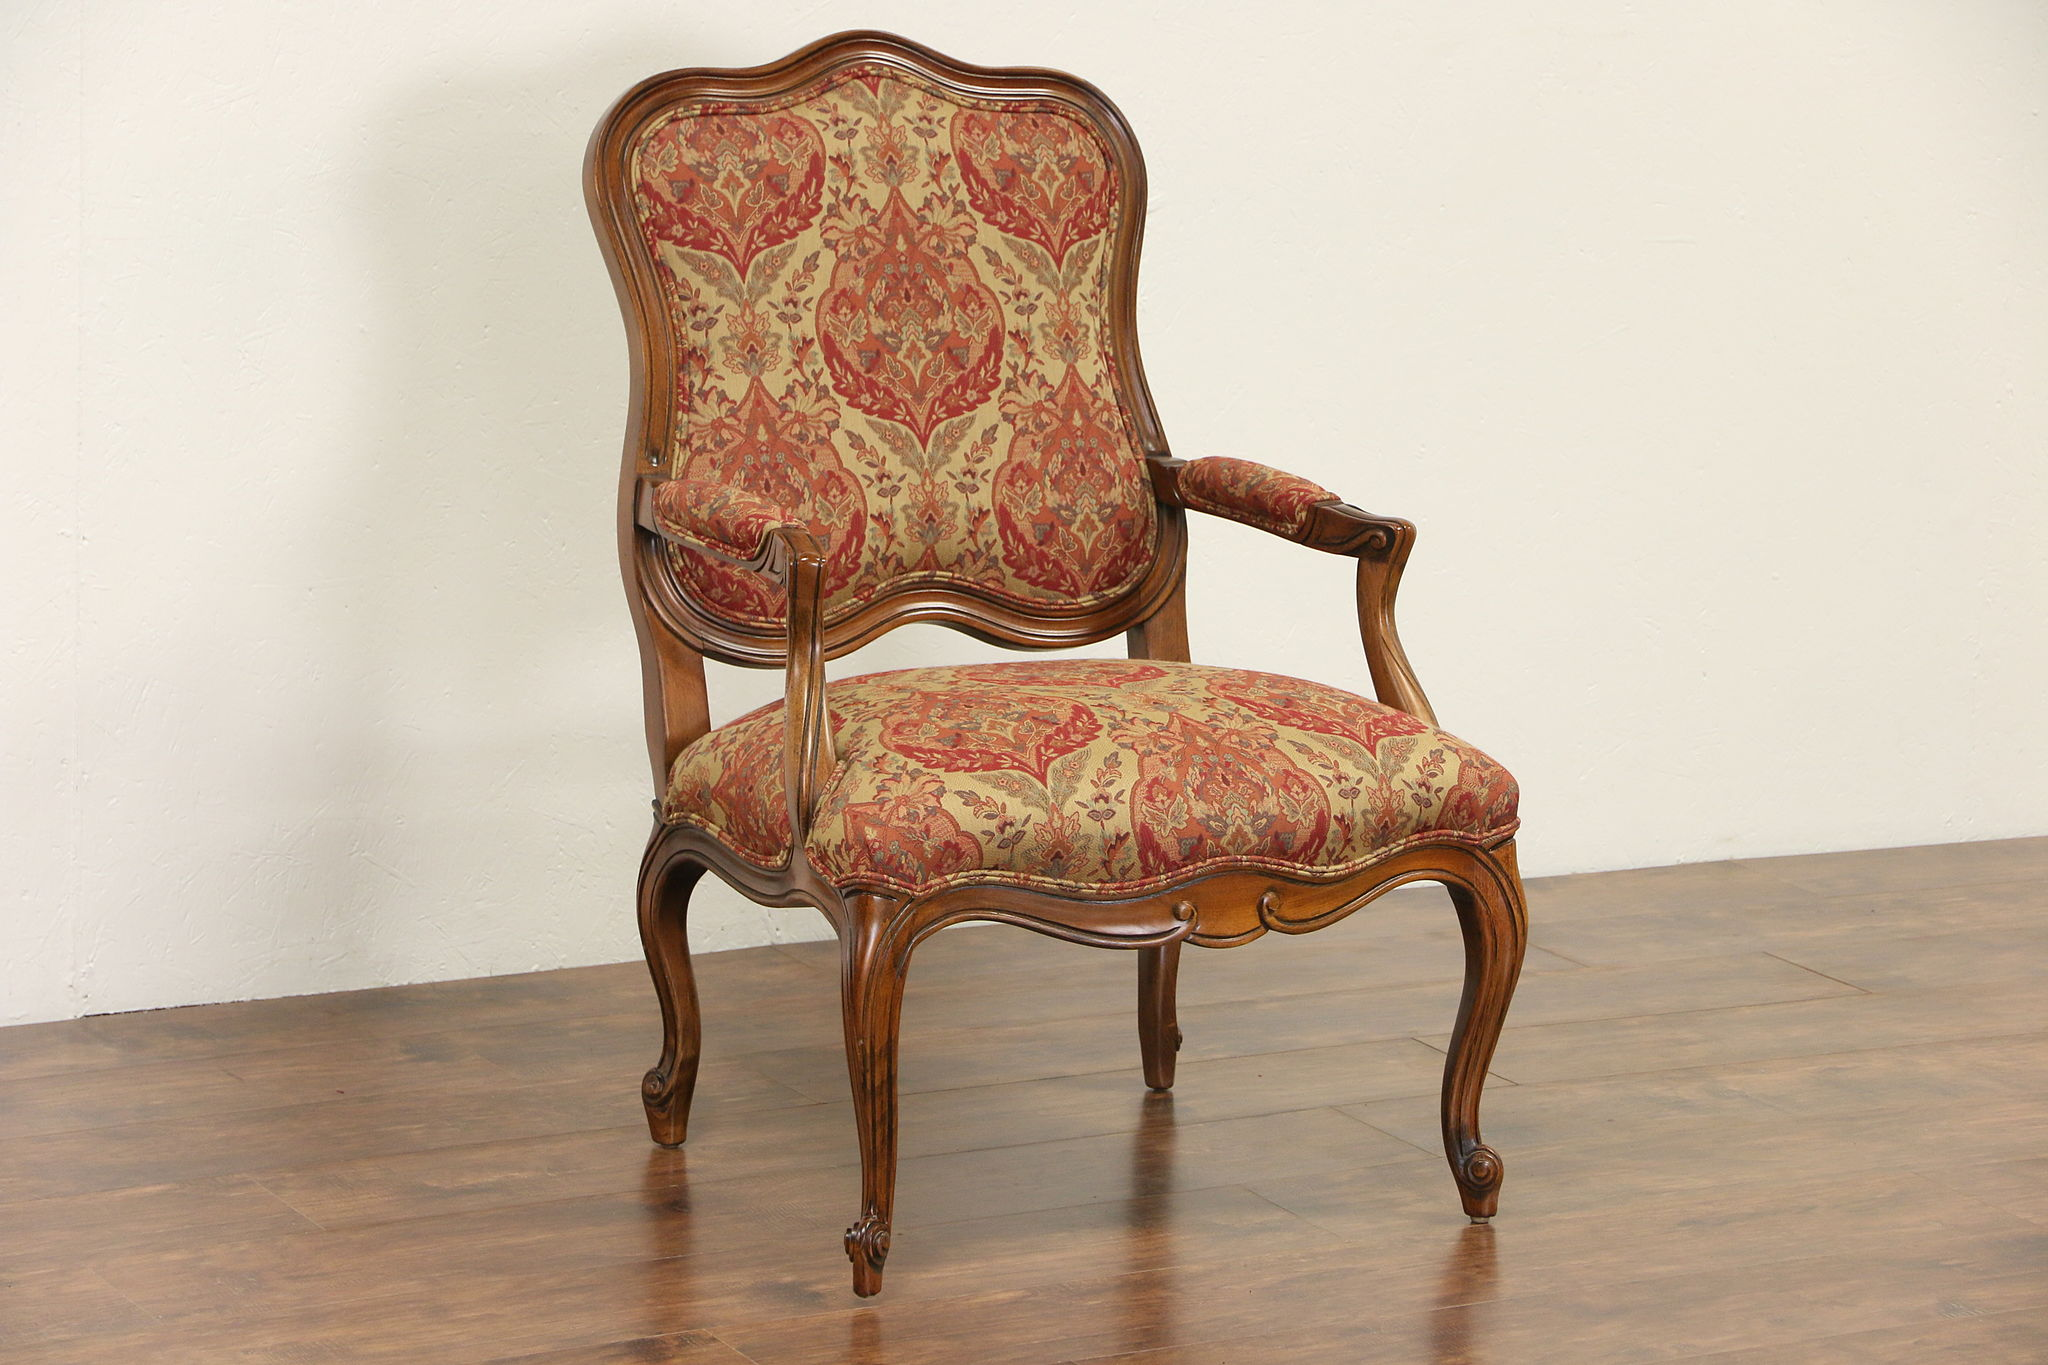 Ethan Allen Carved Country French Chair, Custom Tapestry Upholstery